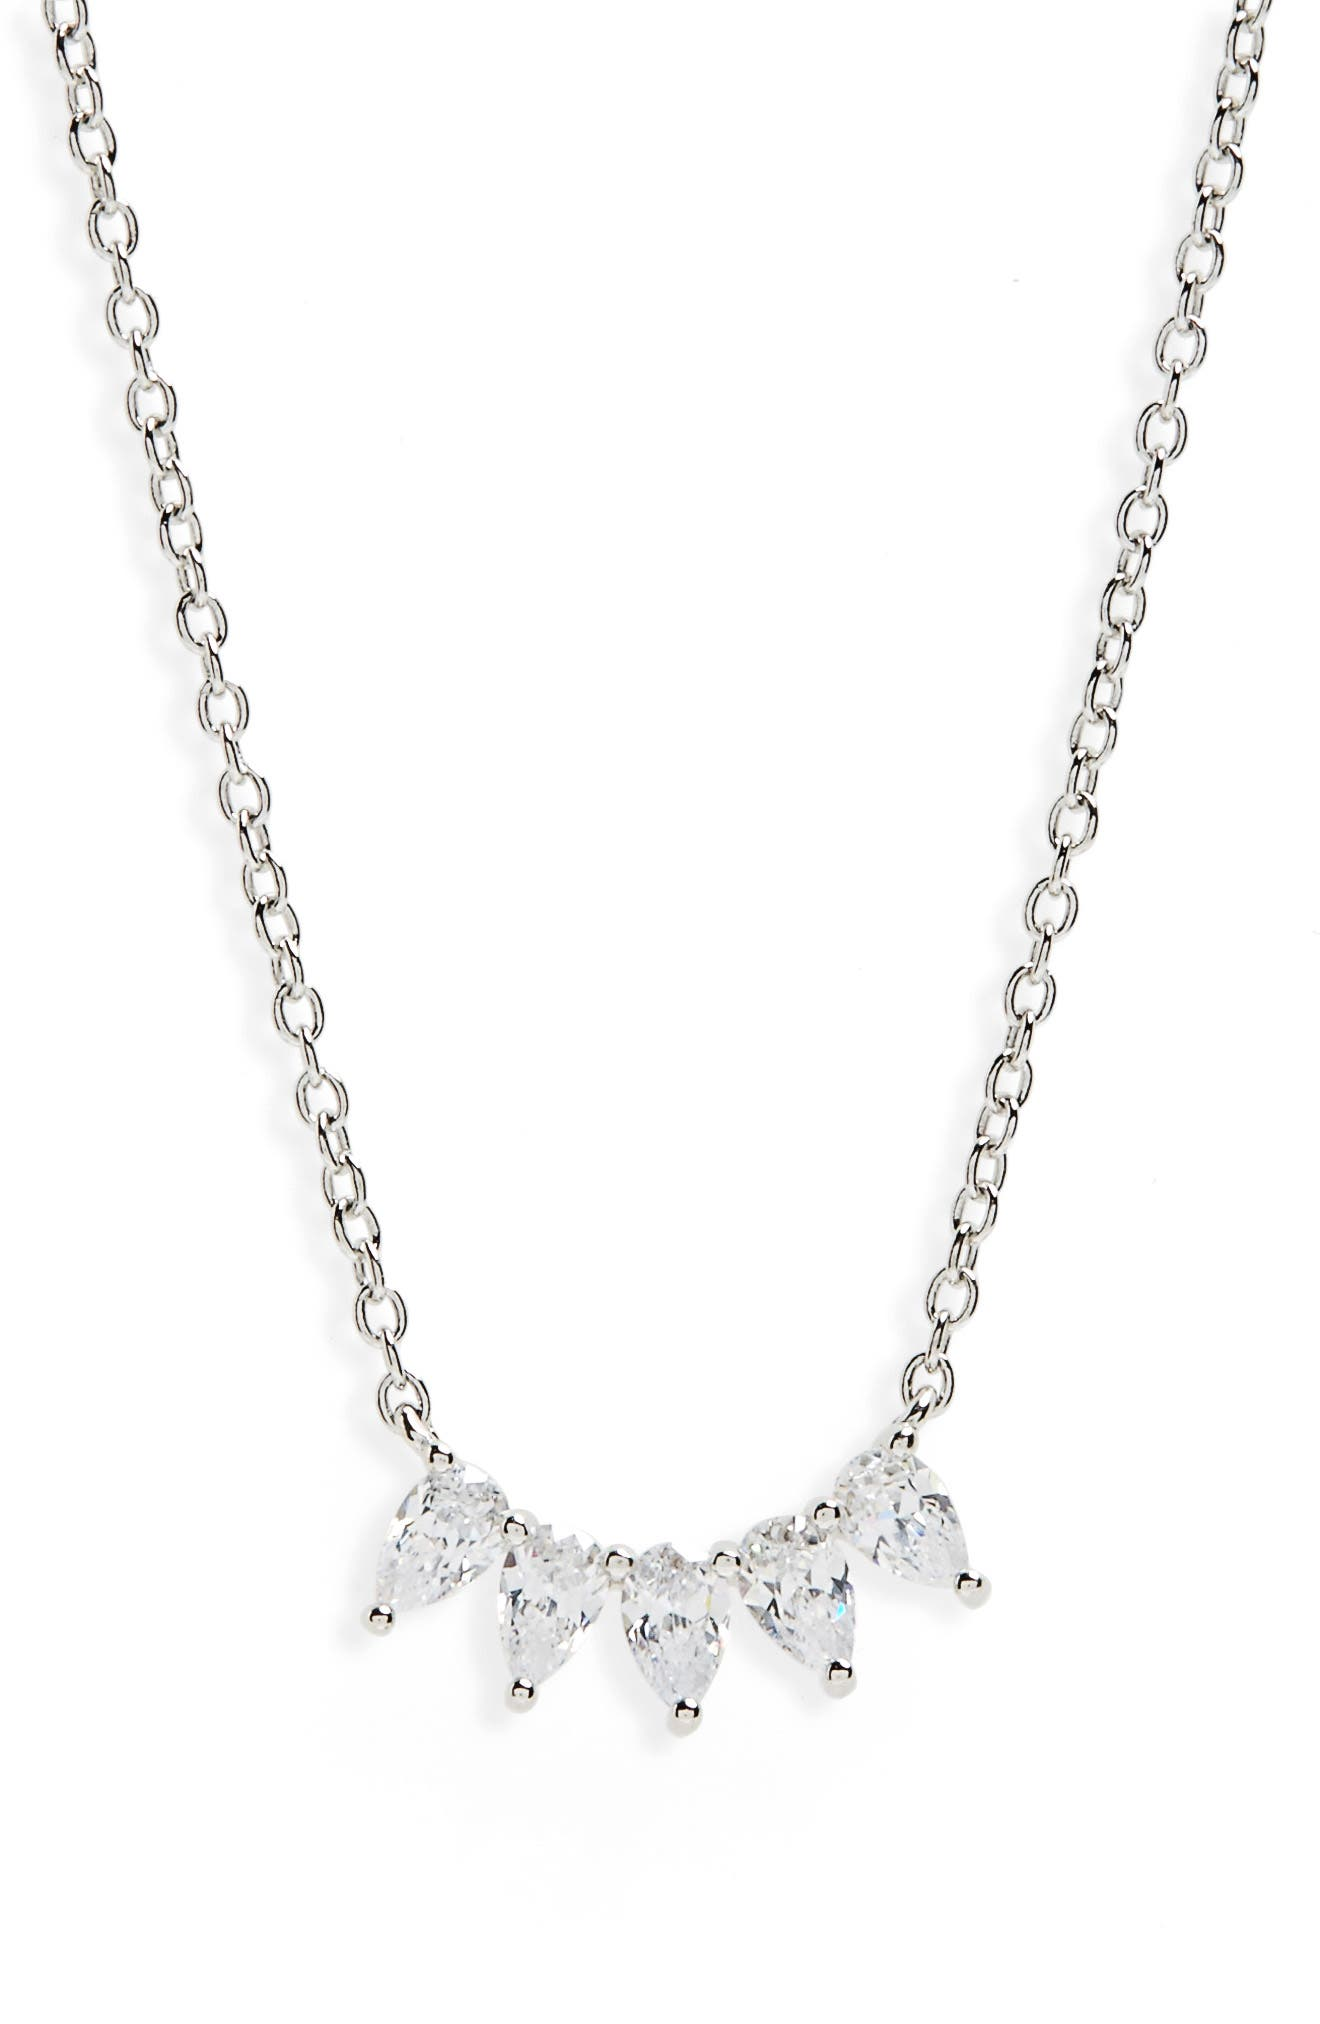 Nordstrom Marquise Cubic Zirconia Pendant Necklace